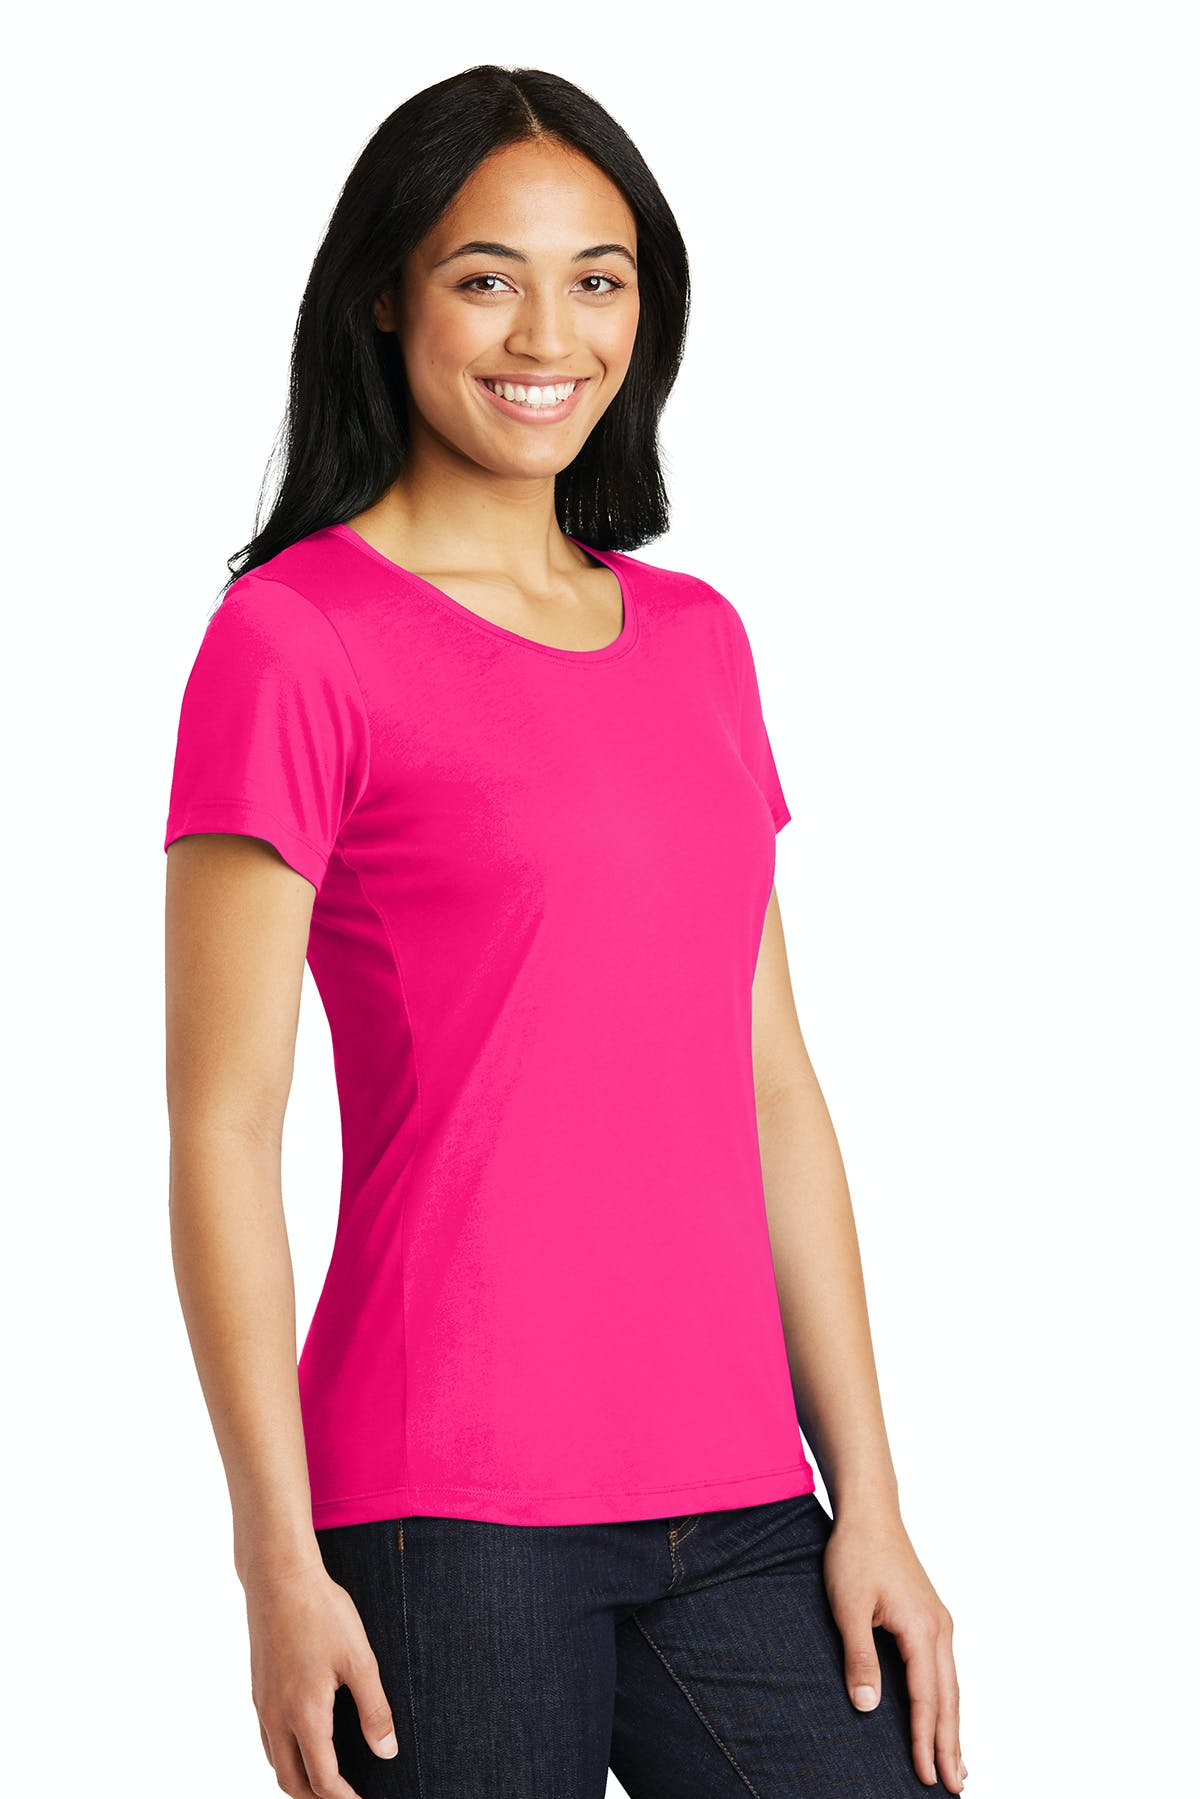 Sport-Tek®   Ladies PosiCharge®  Competitor™  Cotton Touch™  Scoop Neck Tee - sold by PRINT CITY GRAPHICS, INC